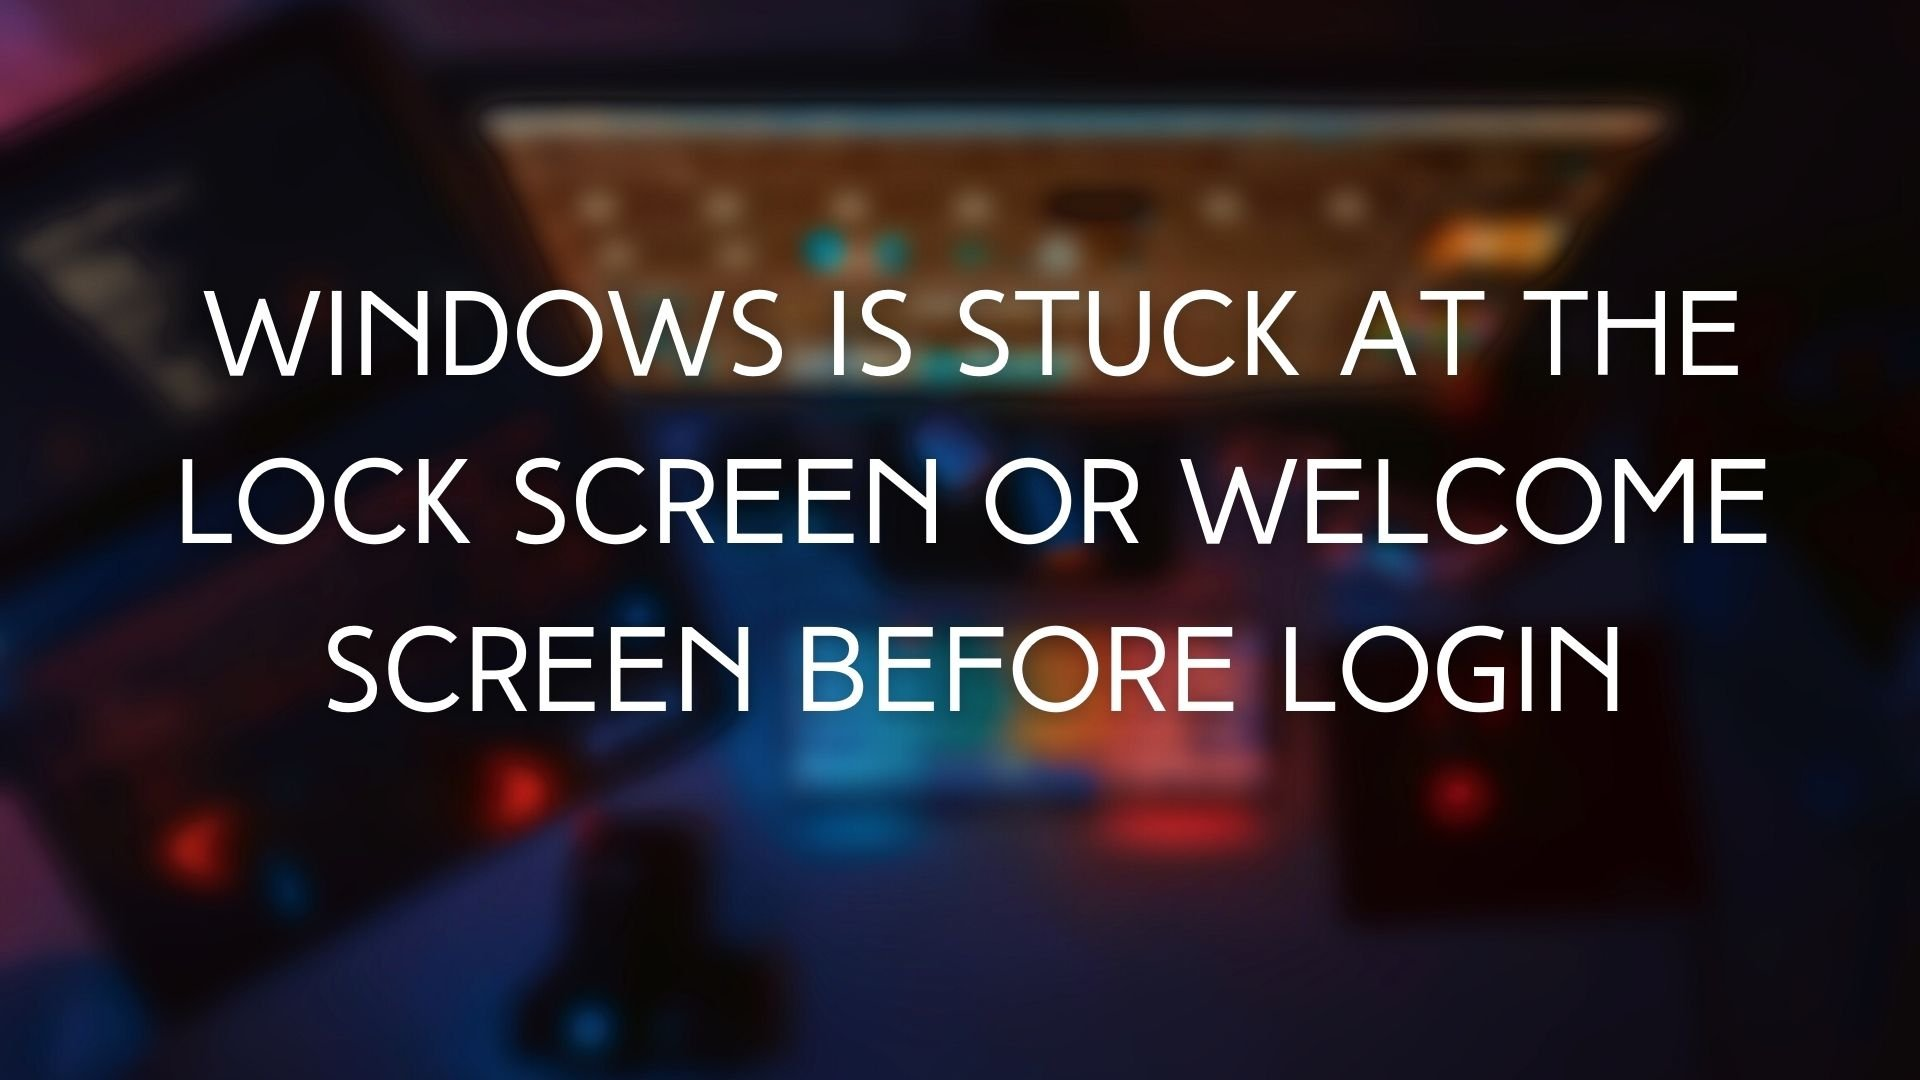 Windows Is Stuck At The Lock Screen Or Welcome Screen